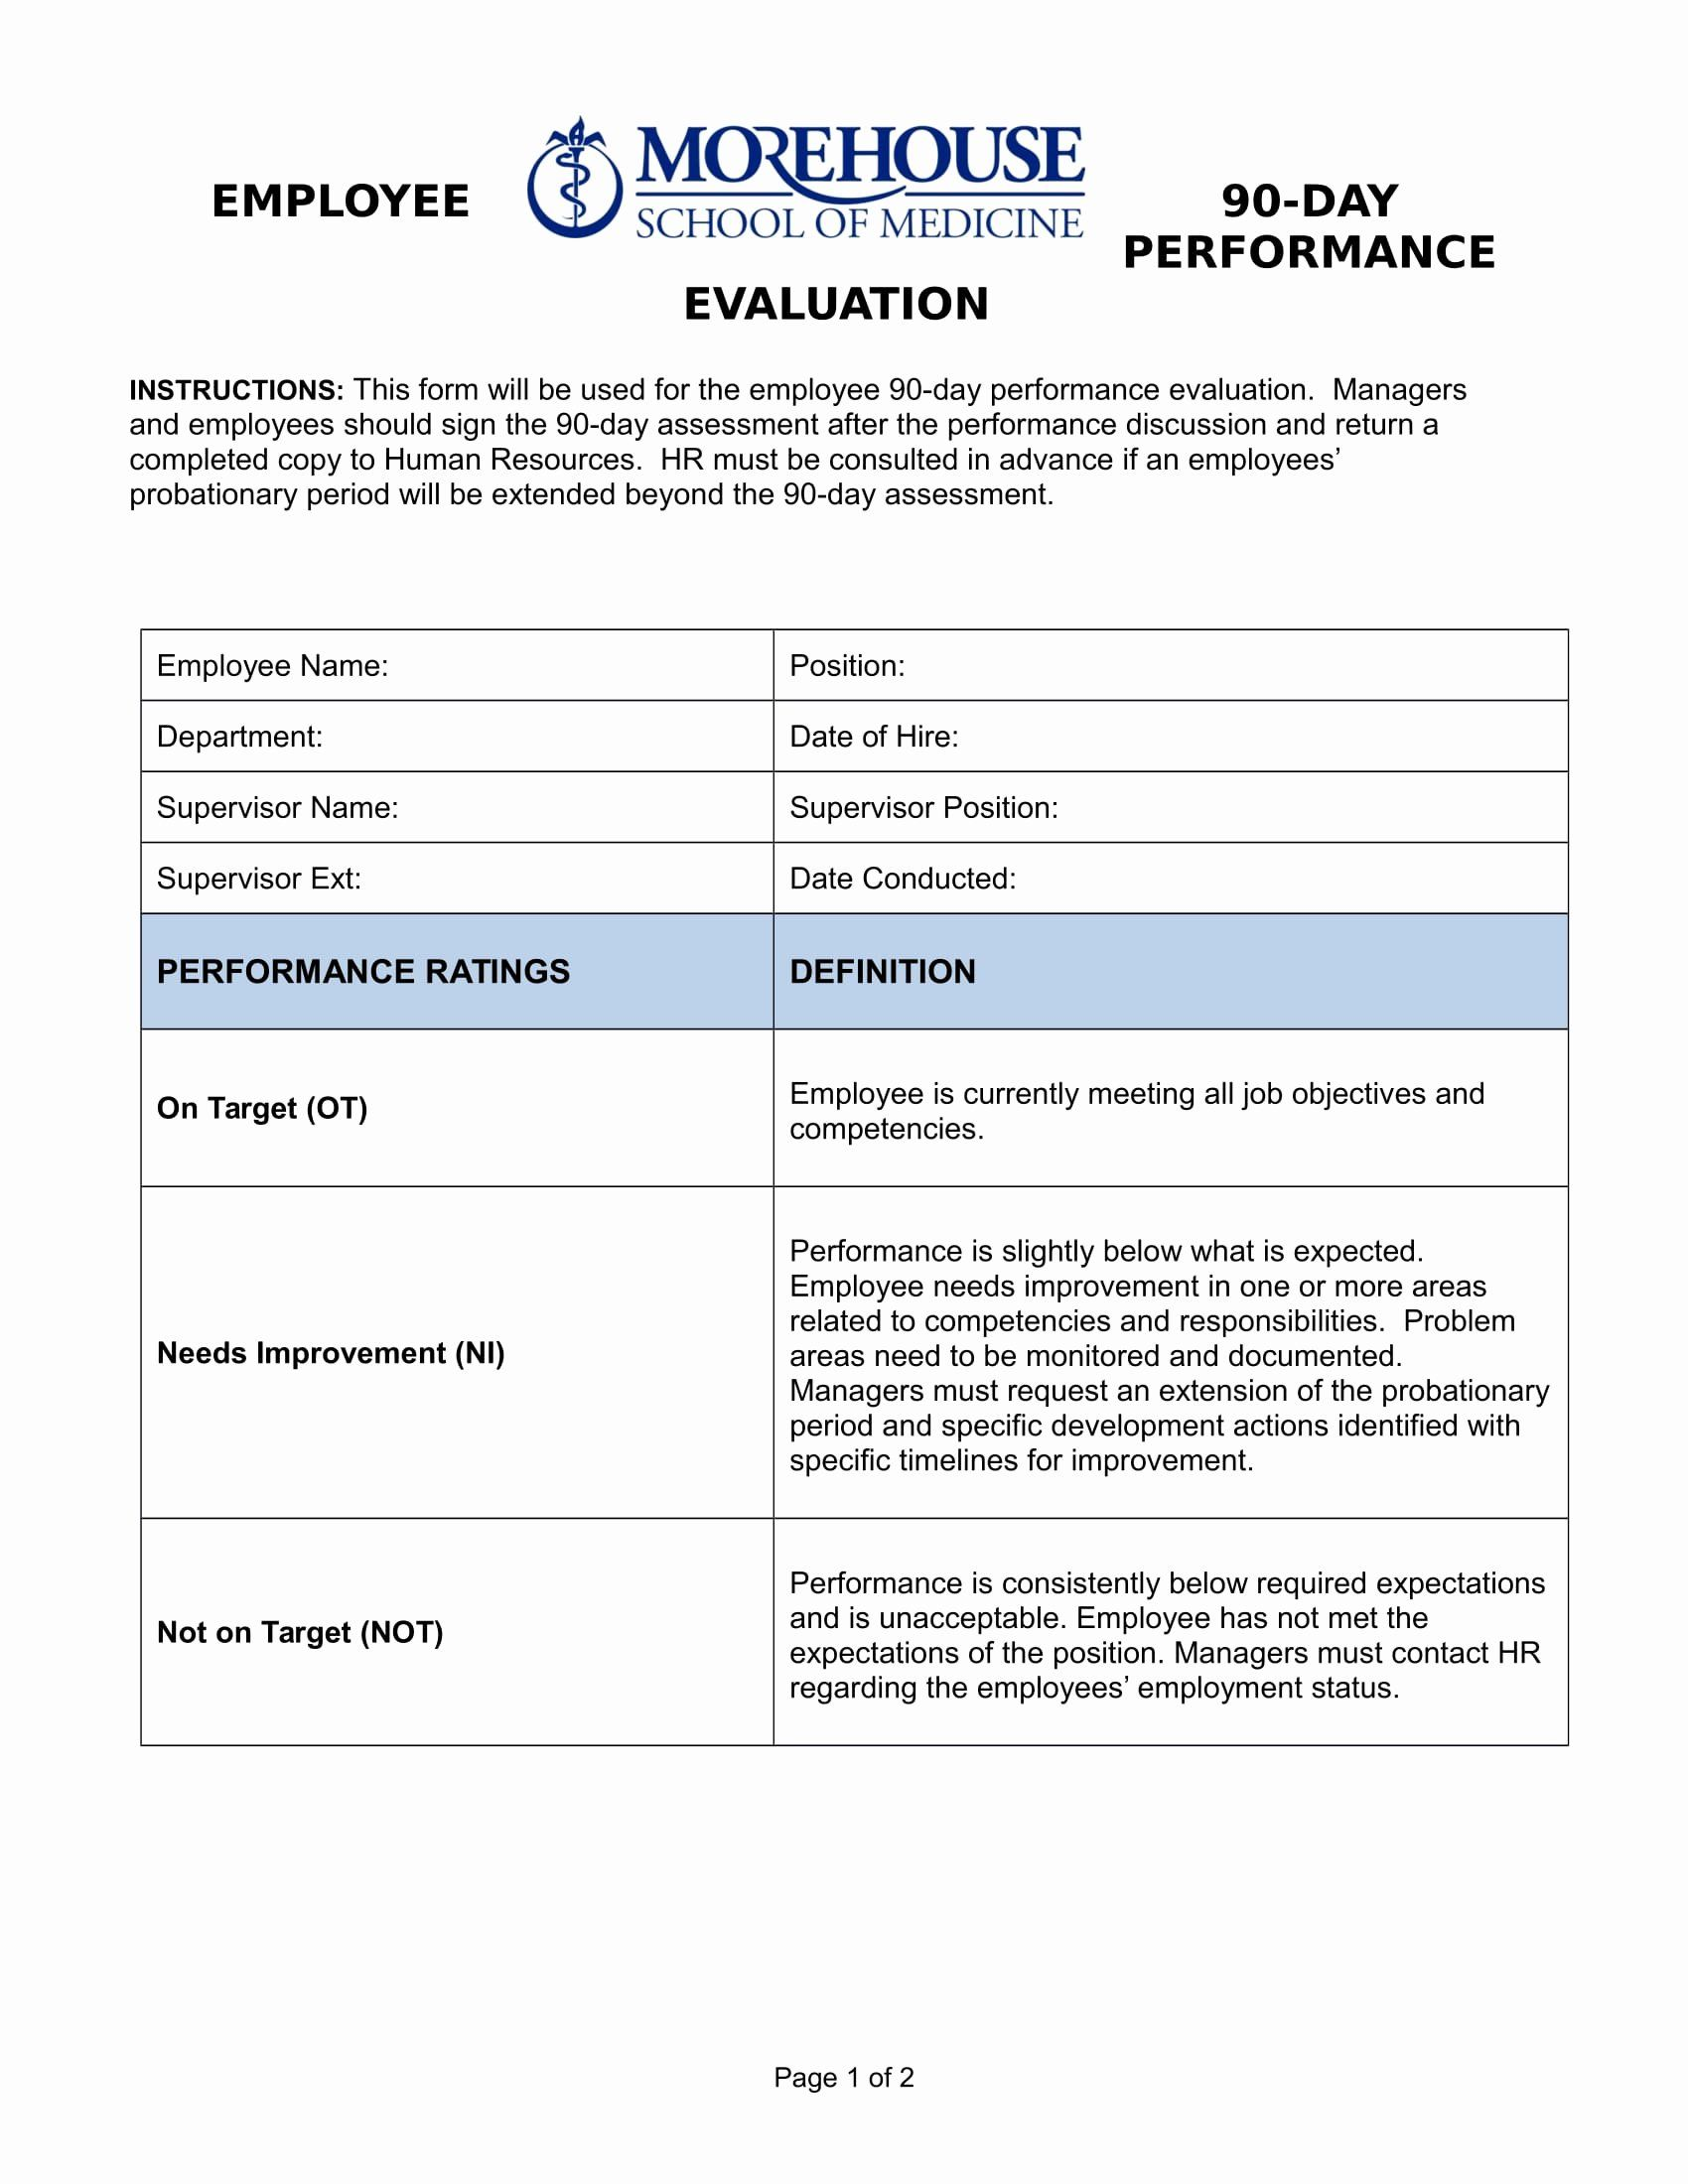 90 Day Employee Evaluation Form Lovely Free 14 90 Day Review Forms In Pdf Employee Evaluation Form Evaluation Employee Performance Reviews 90 day performance review template